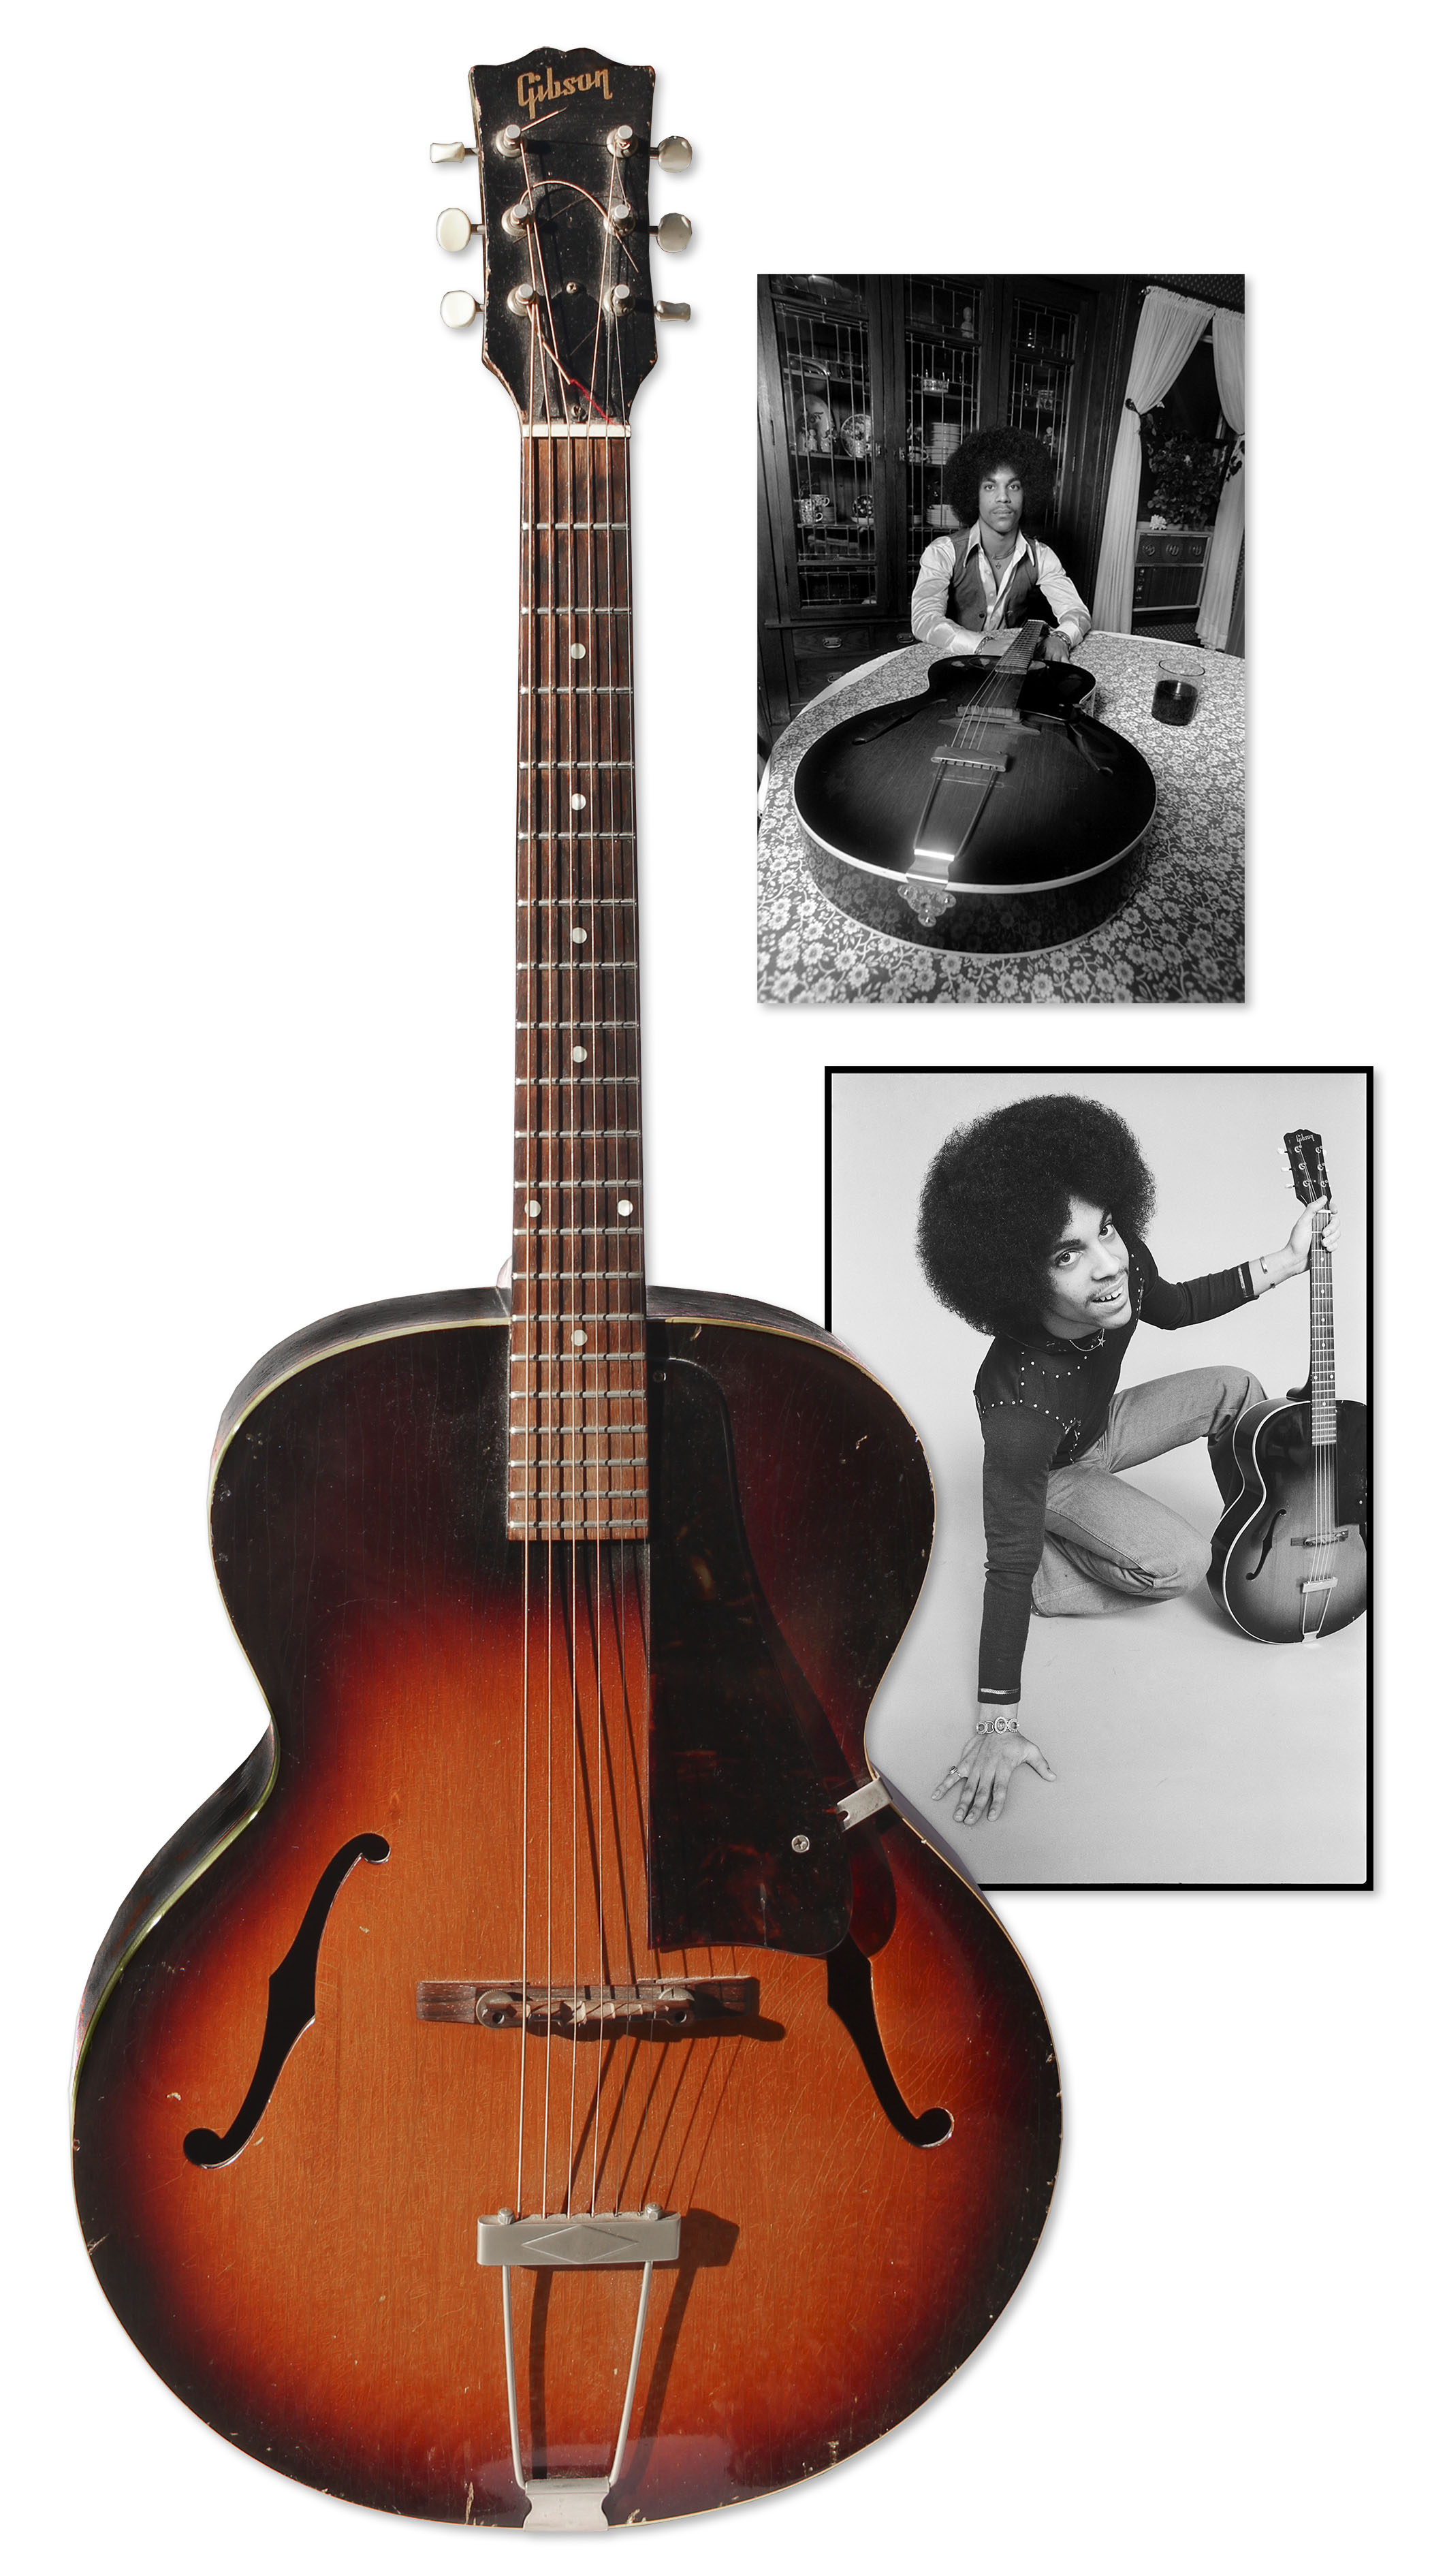 Prince Guitar 1959 Gibson Guitar Used by Prince to Compose & Record Early Demo Tracks -- Prince Was Famously Photographed With the Favorite Guitar in Early Promotions